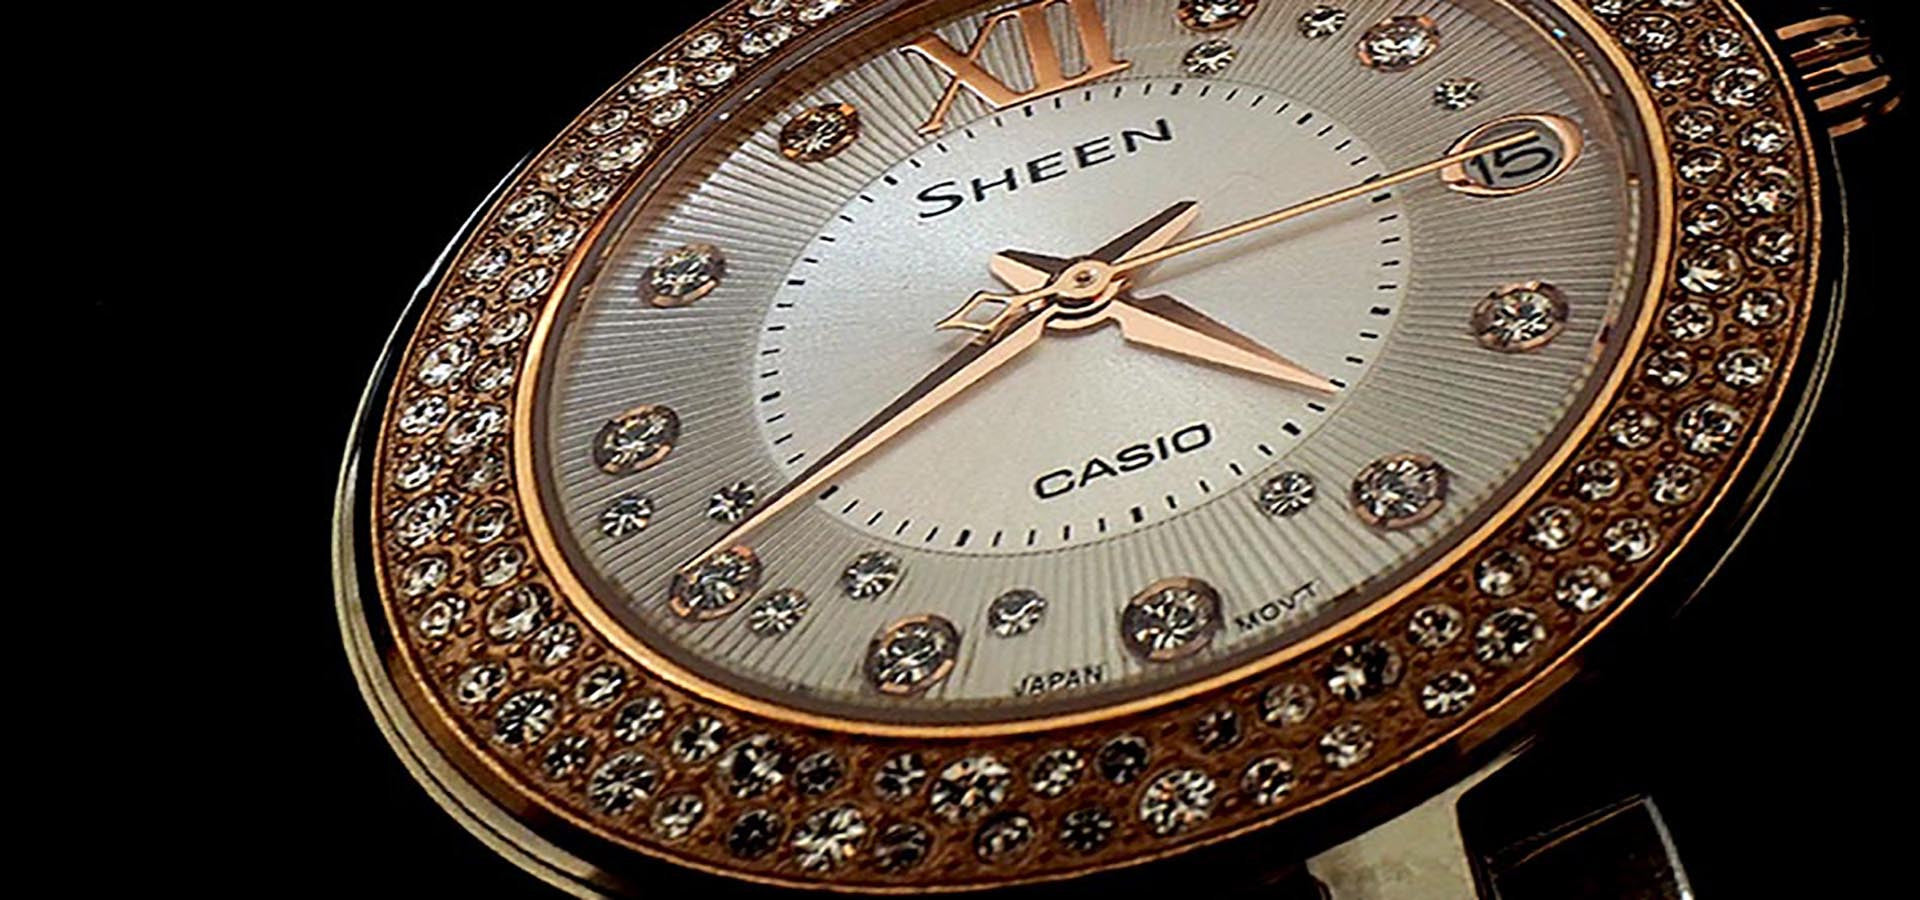 Casio Sheen Womens Watch